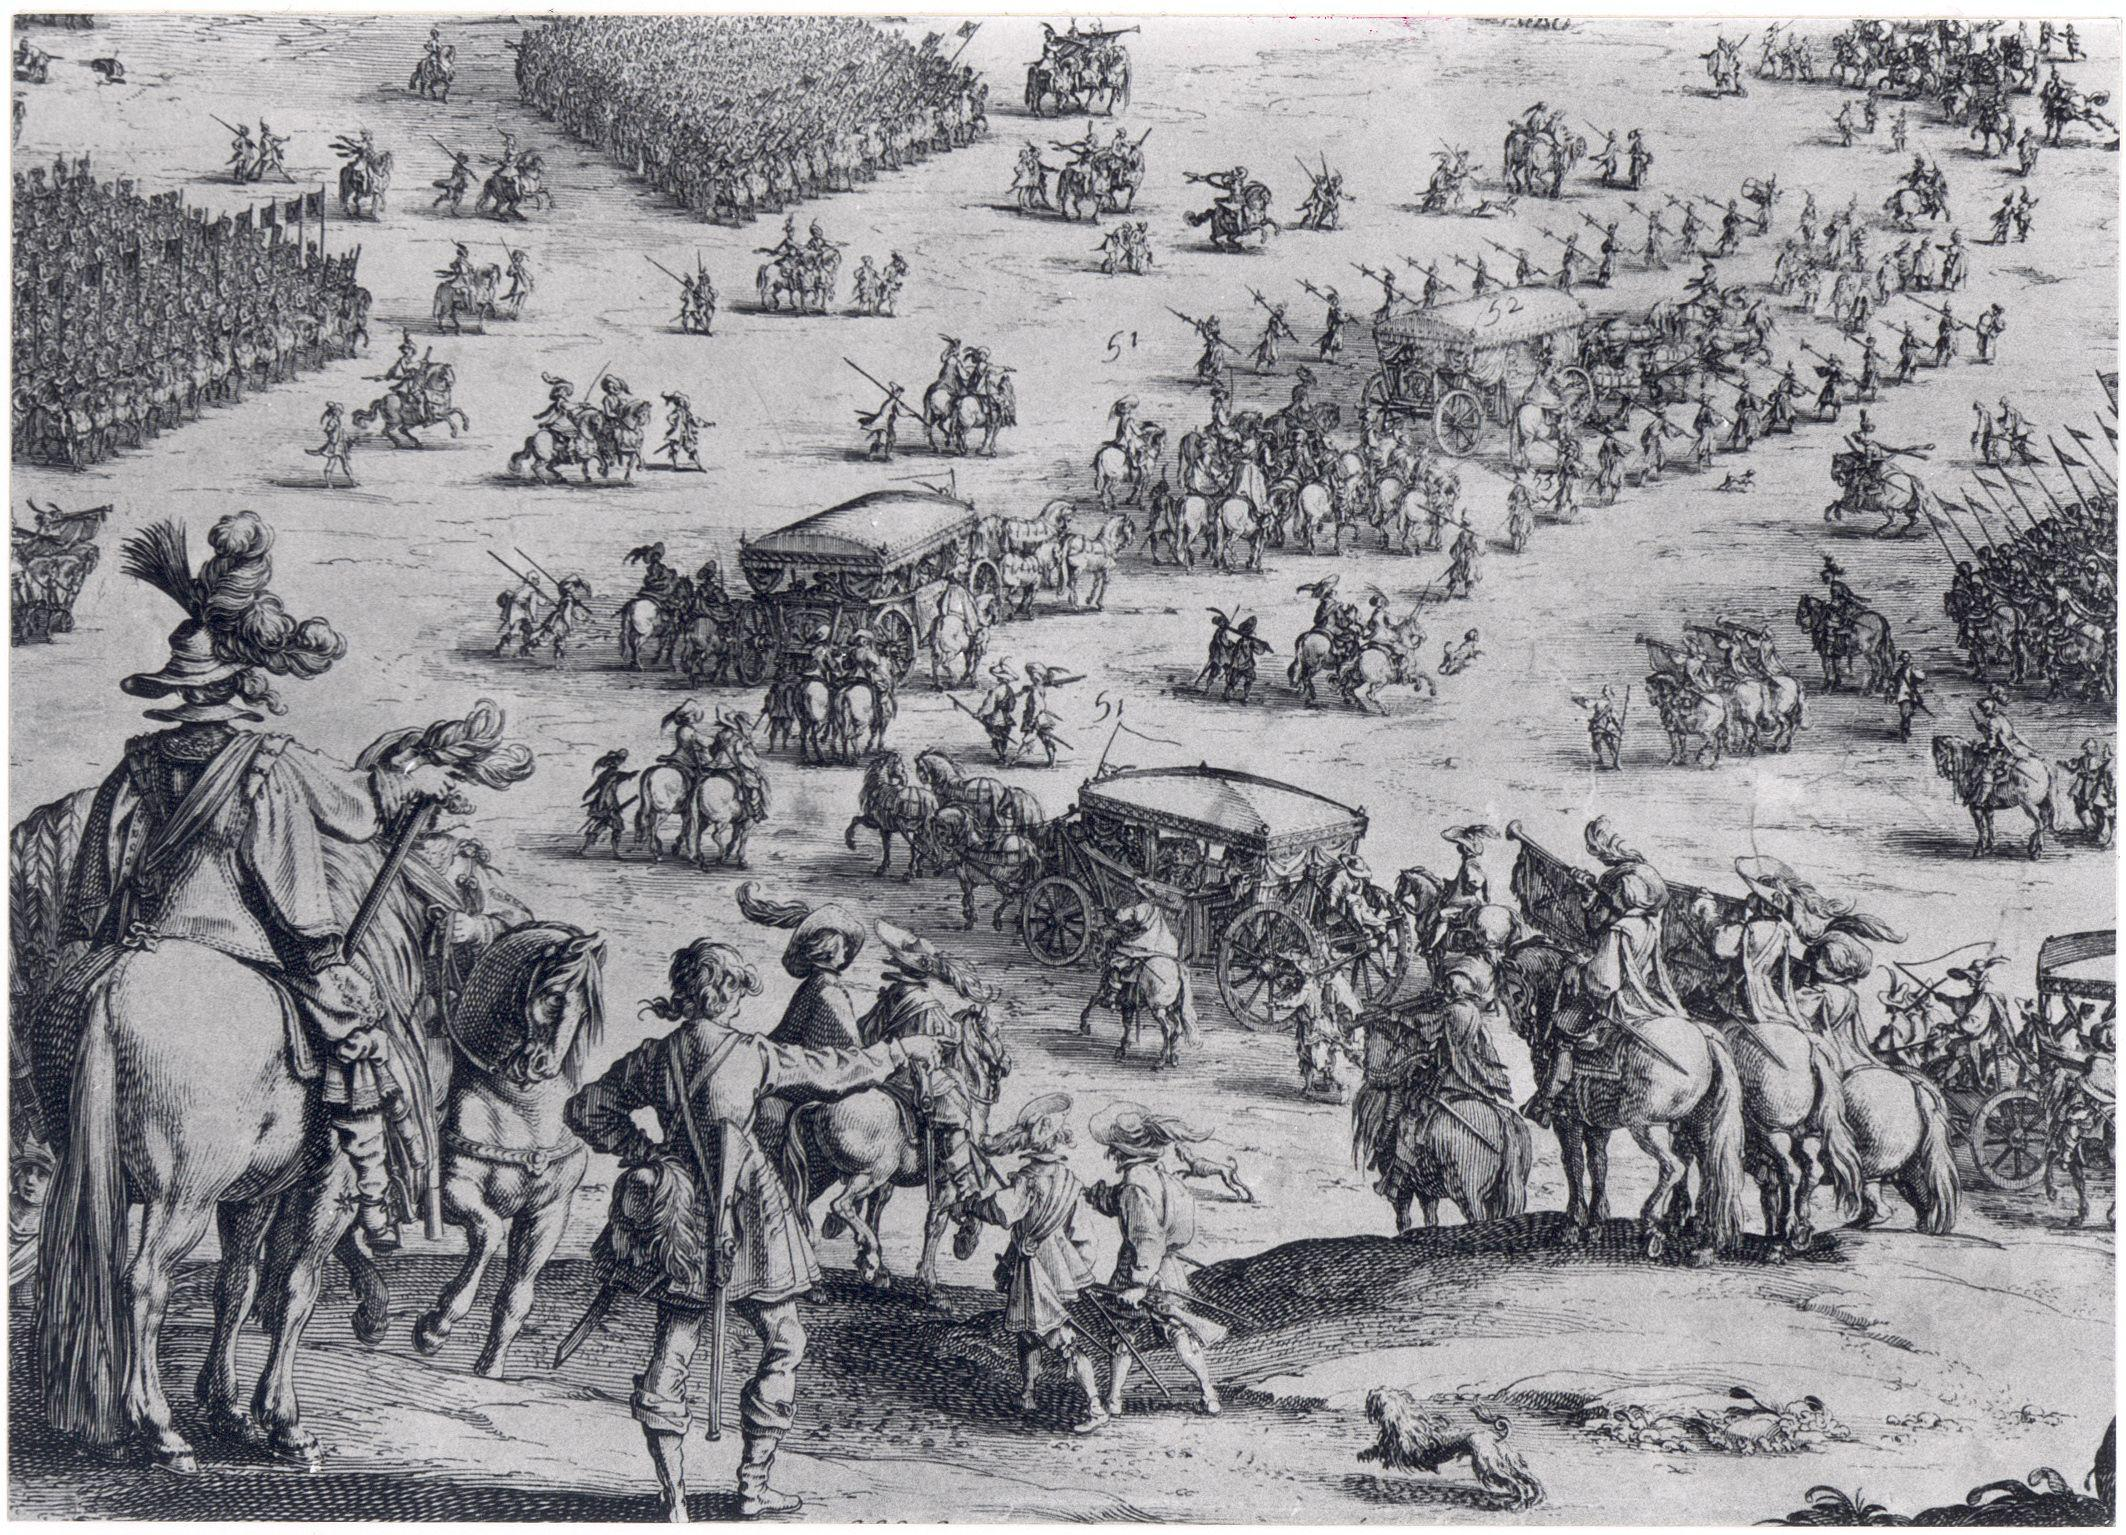 Engraving of the Siege of Breda from http://st...